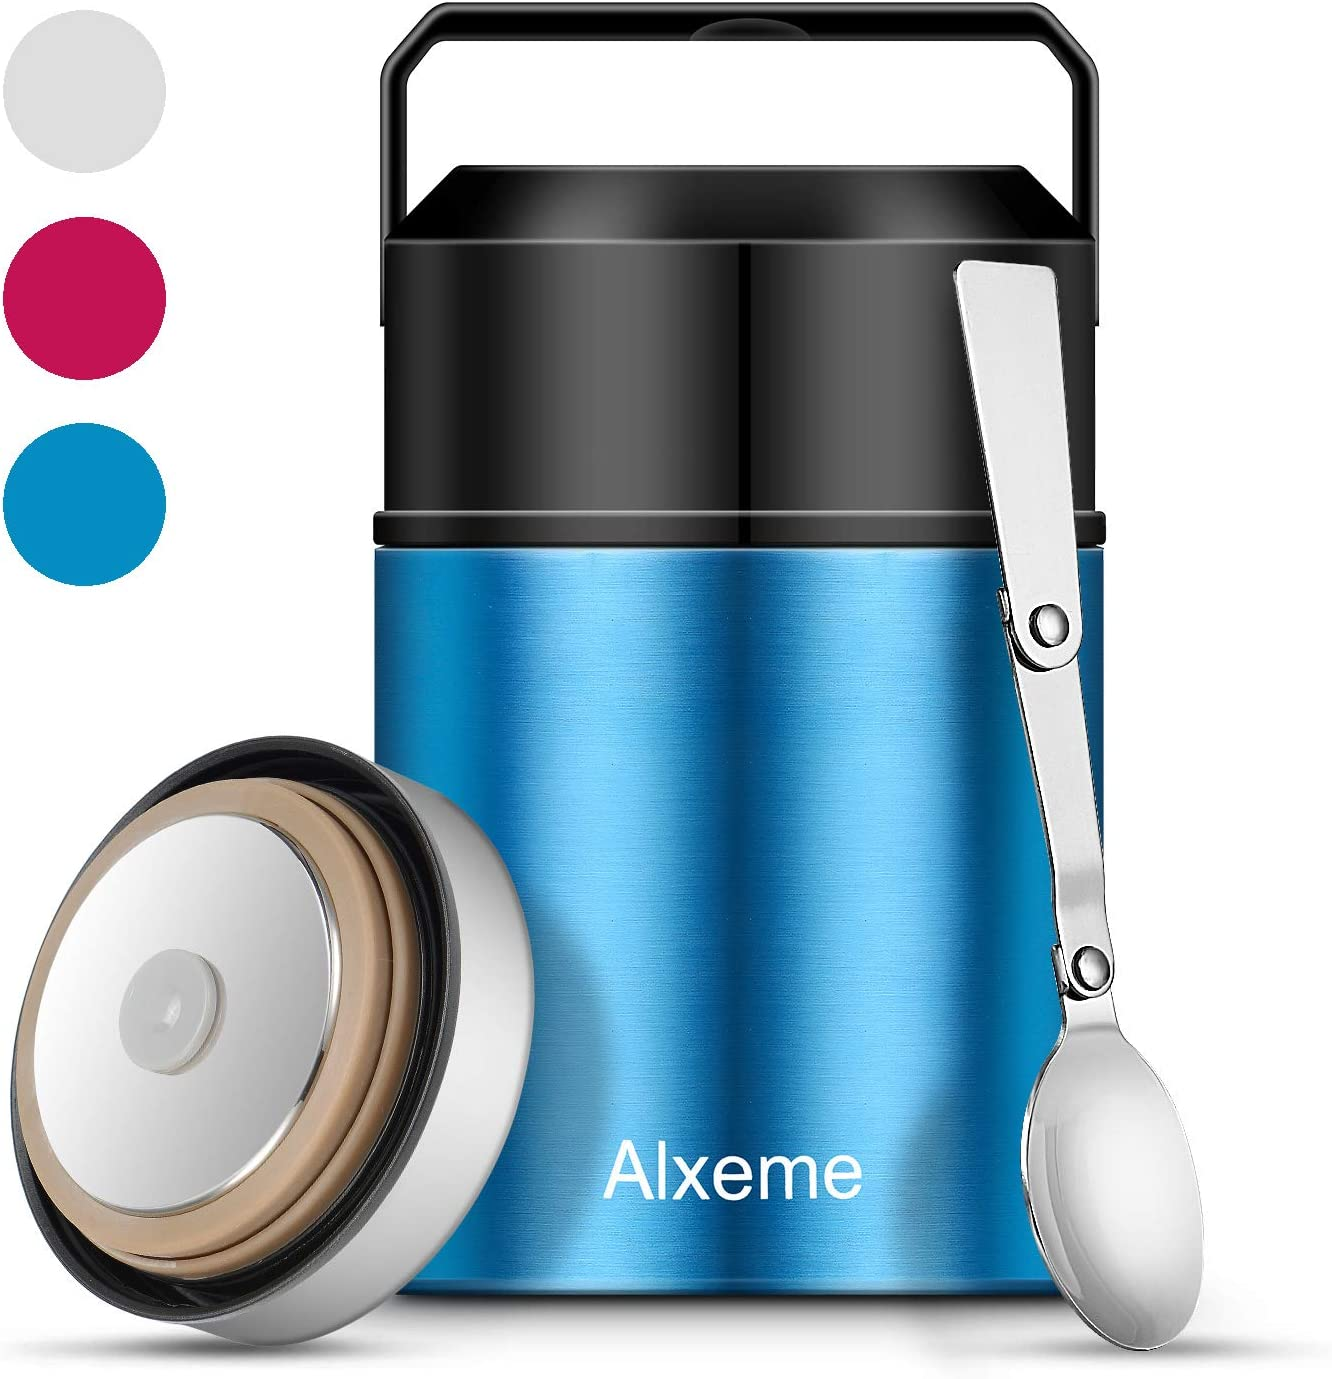 Insulated Lunch Containers Food Jar Alxeme 27 oz Stainless Steel Vacuum Soup Thermos Bento Lunch Box for Hot/Cold Food with Folding Spoon & Flexible Handle Leak Proof Wide Mouth for Work – Blue